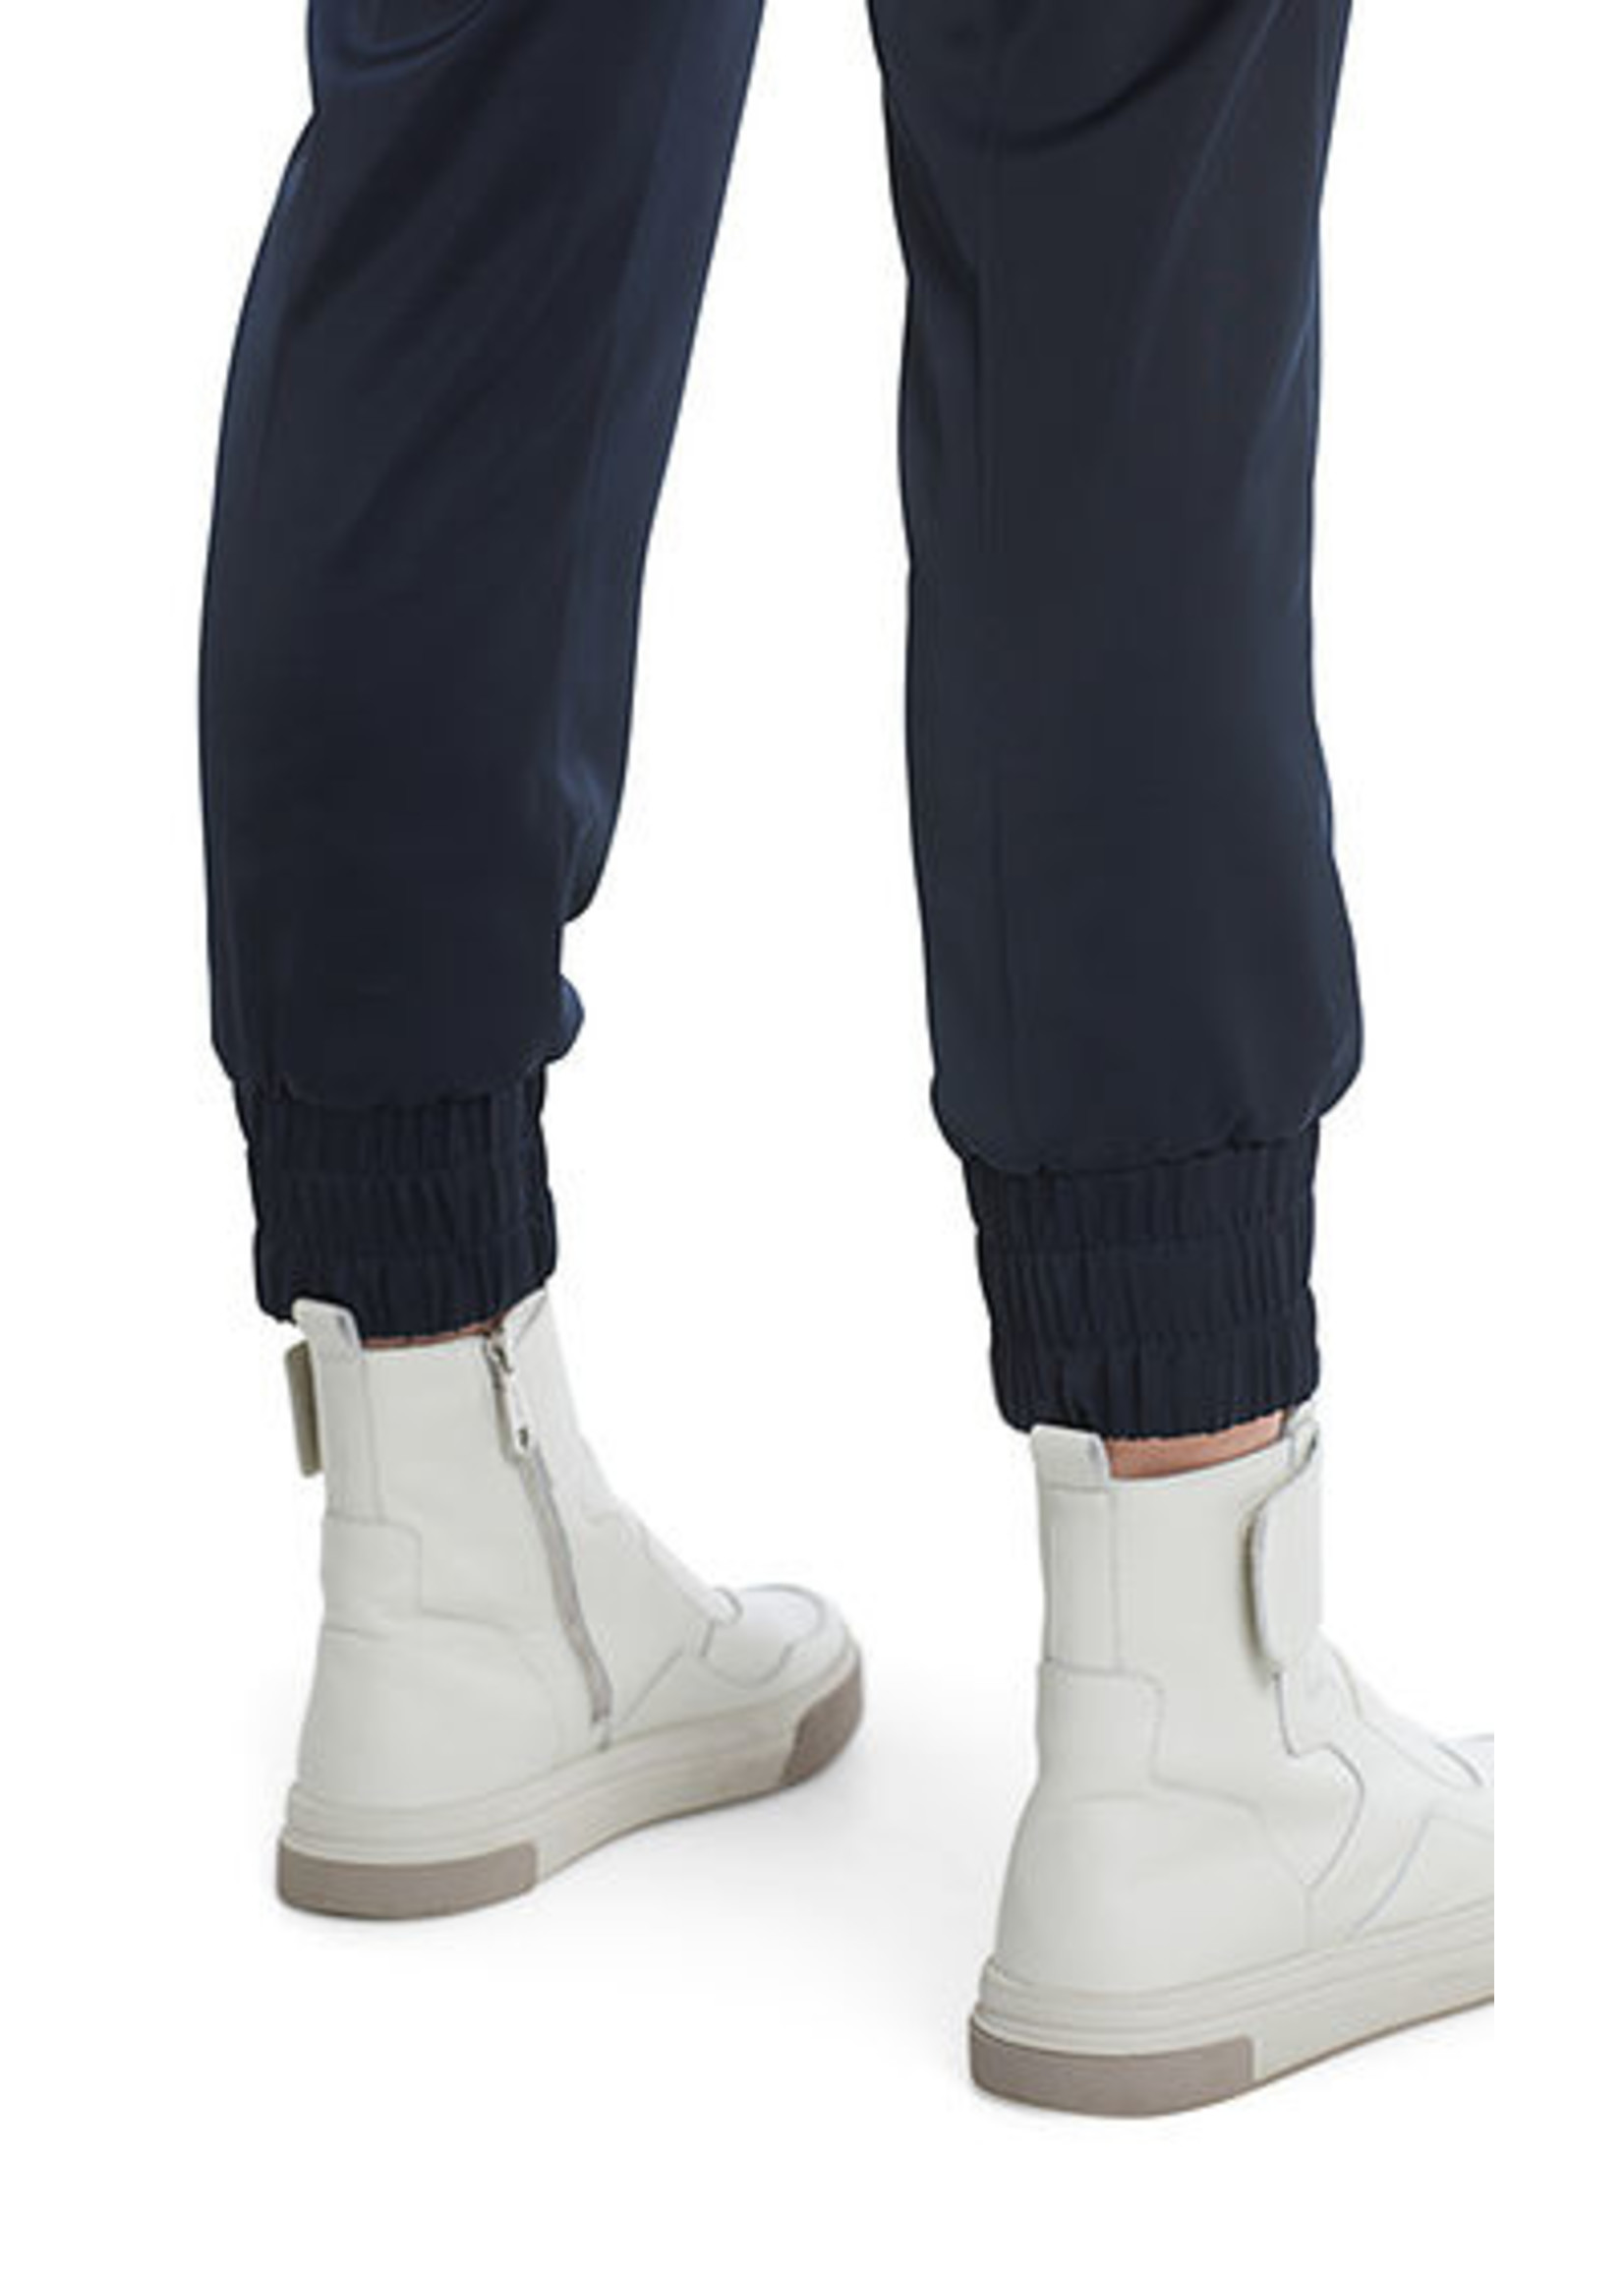 Marccain Sports Broek RS 81.15 W69 paradise blue